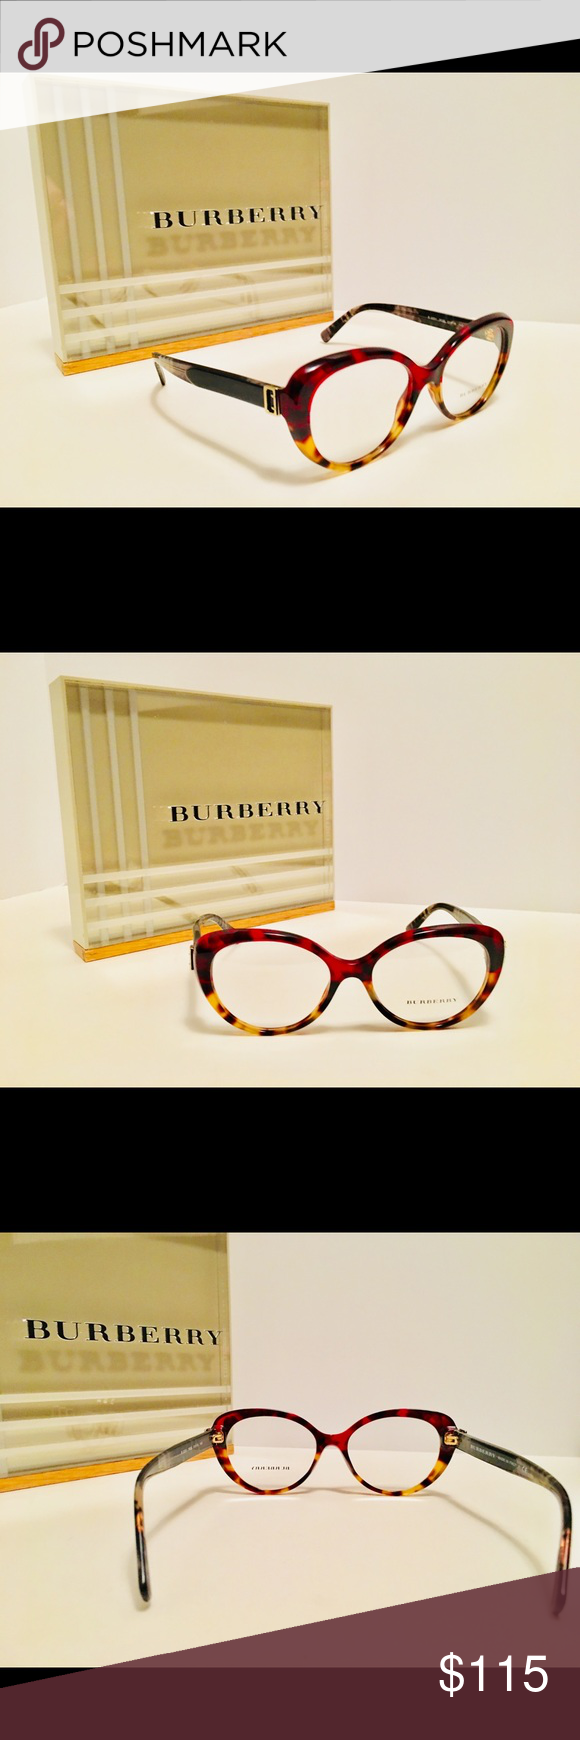 1722d3a3d59 Burberry Eyeglasses B2251 3635 Red Havana Light Size  51-16-140 Demo Lens  Rx-Able Frame Only (no case) Burberry Accessories Glasses